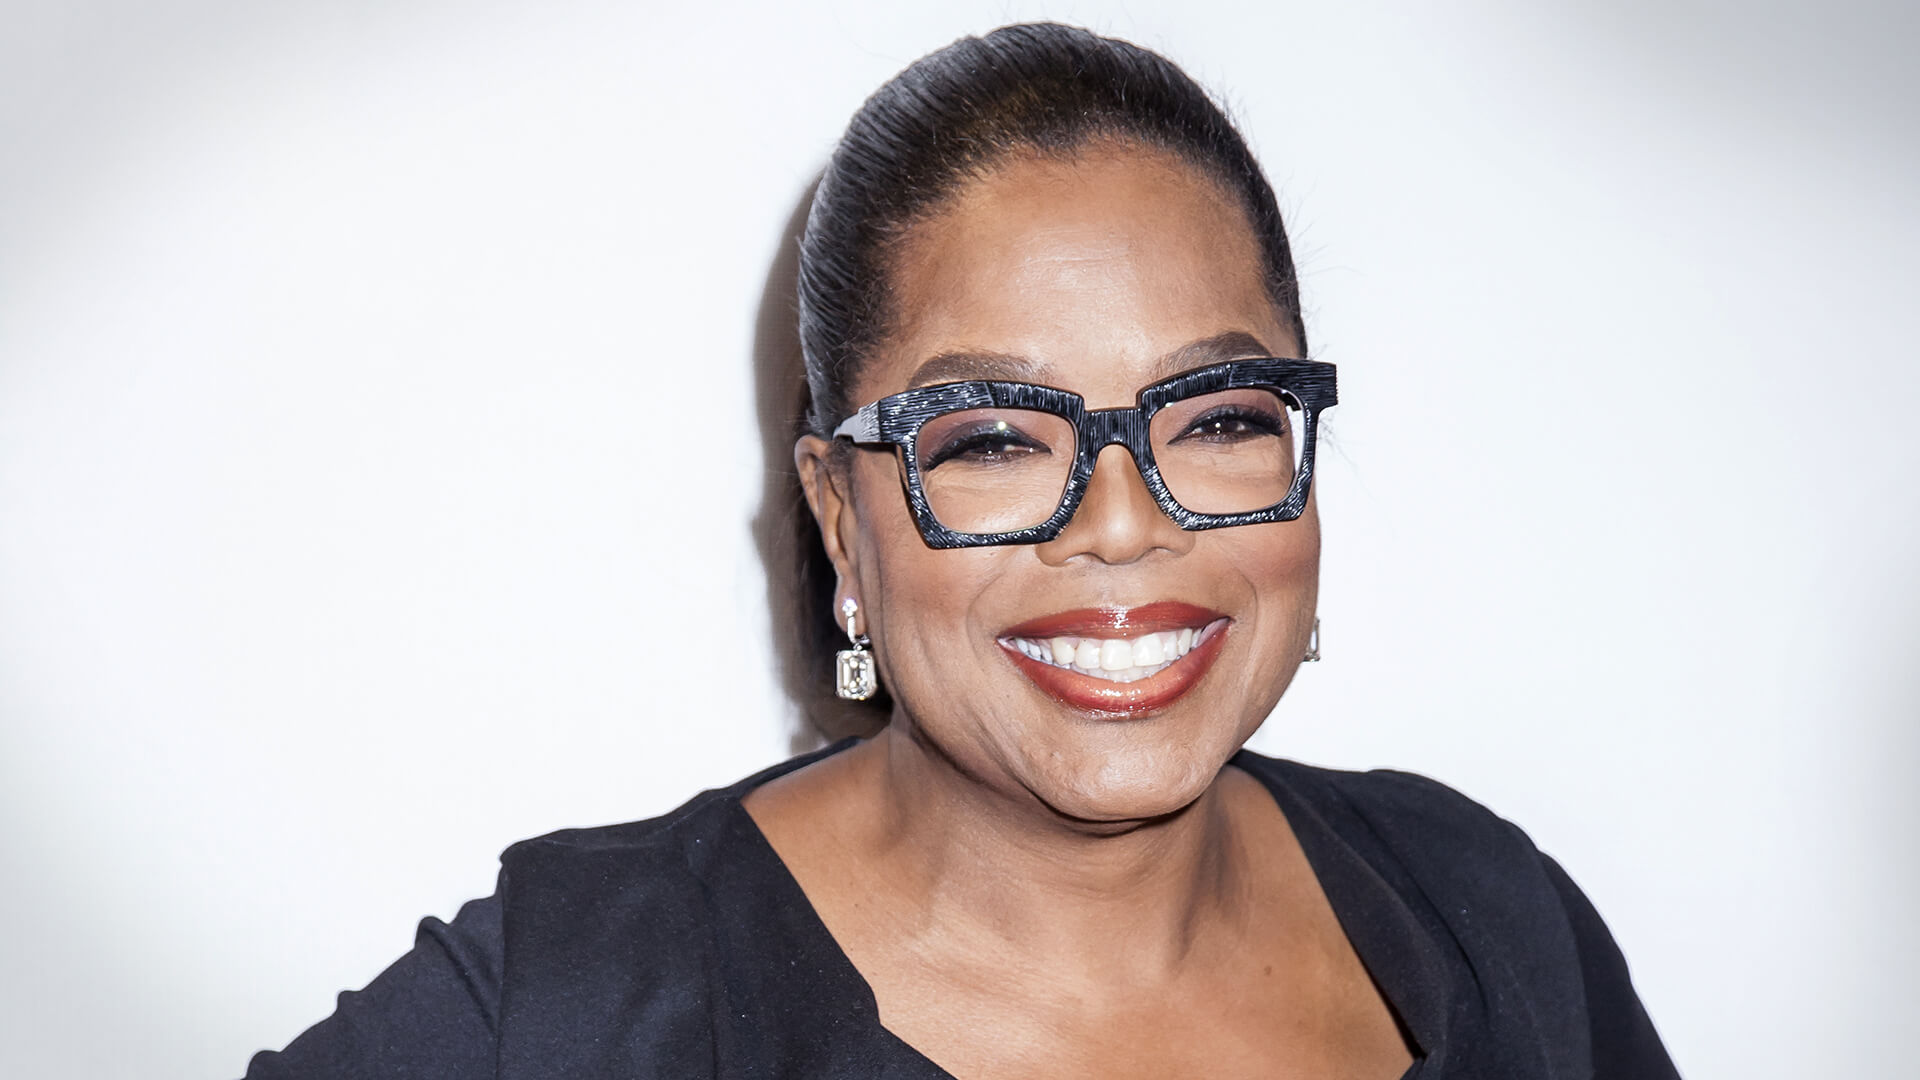 New York, NY, USA - April 20, 2016: Actress, producer Oprah Winfrey attends the 'Greenleaf' premiere during the 2016 Tribeca Film Festival at the John Zuccotti Theater at BMCC Tribeca PAC, NYC.